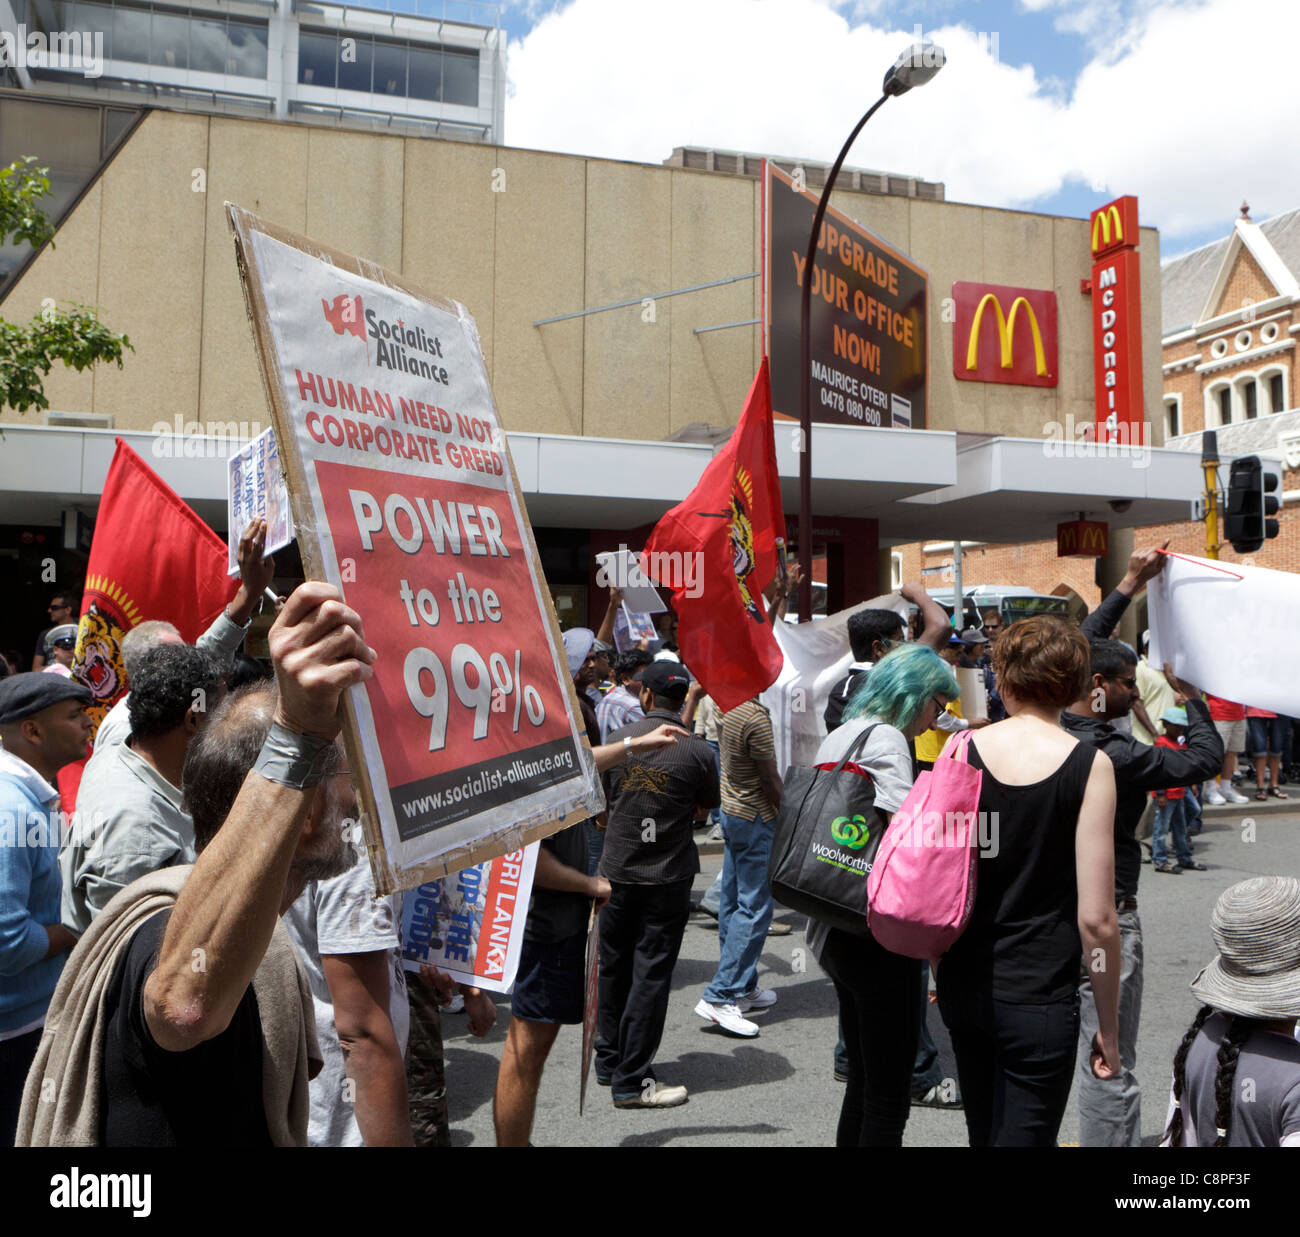 Protester holds a 'Human Need Not Corporate Greed' Banner near a Macdonald's sign. - Stock Image